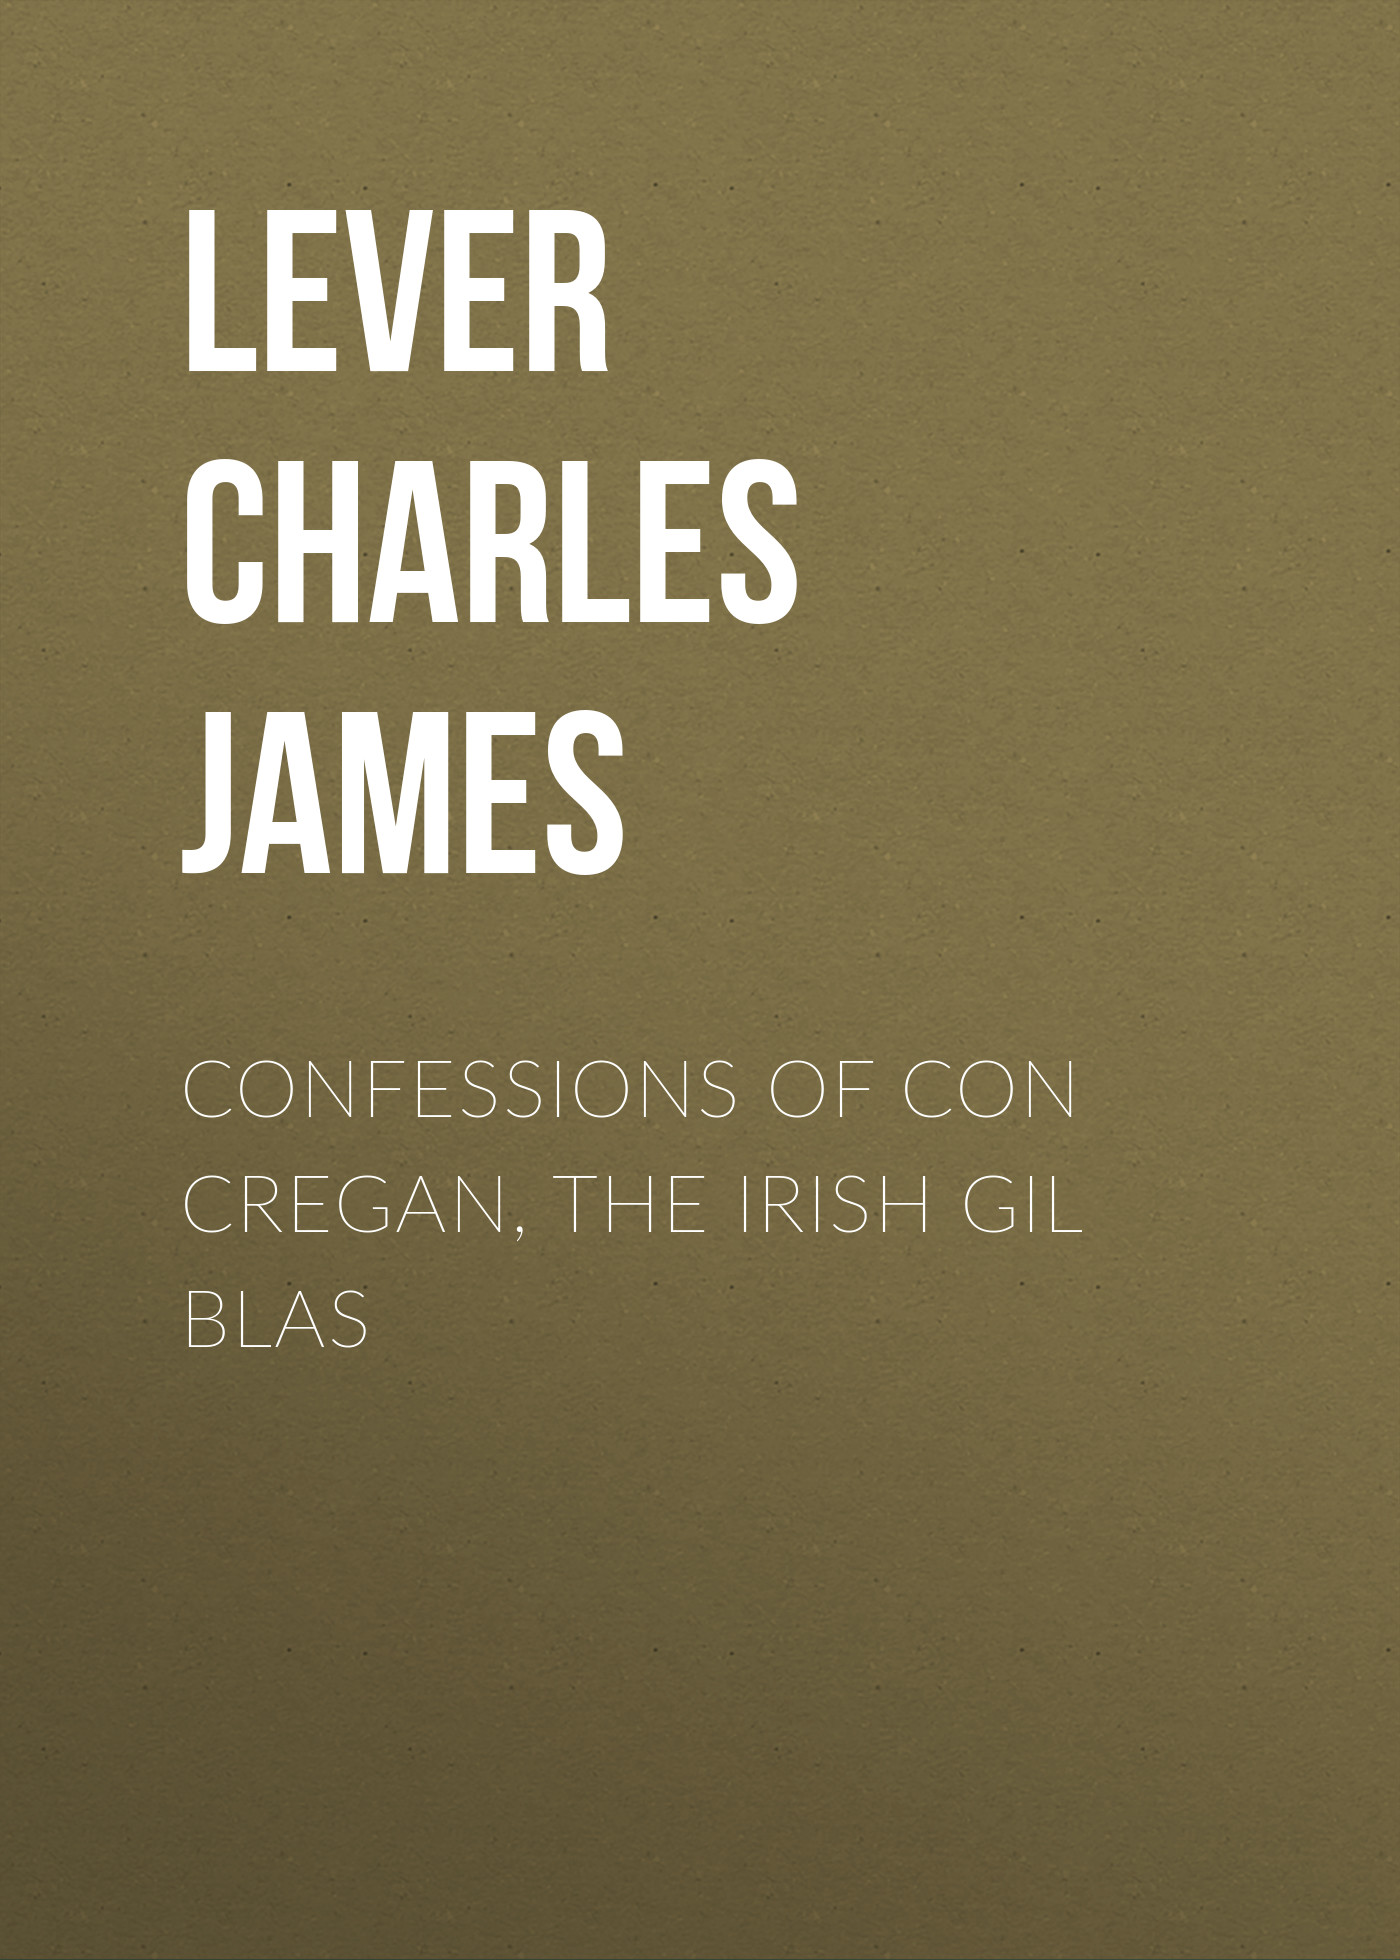 Lever Charles James Confessions Of Con Cregan, the Irish Gil Blas недорого